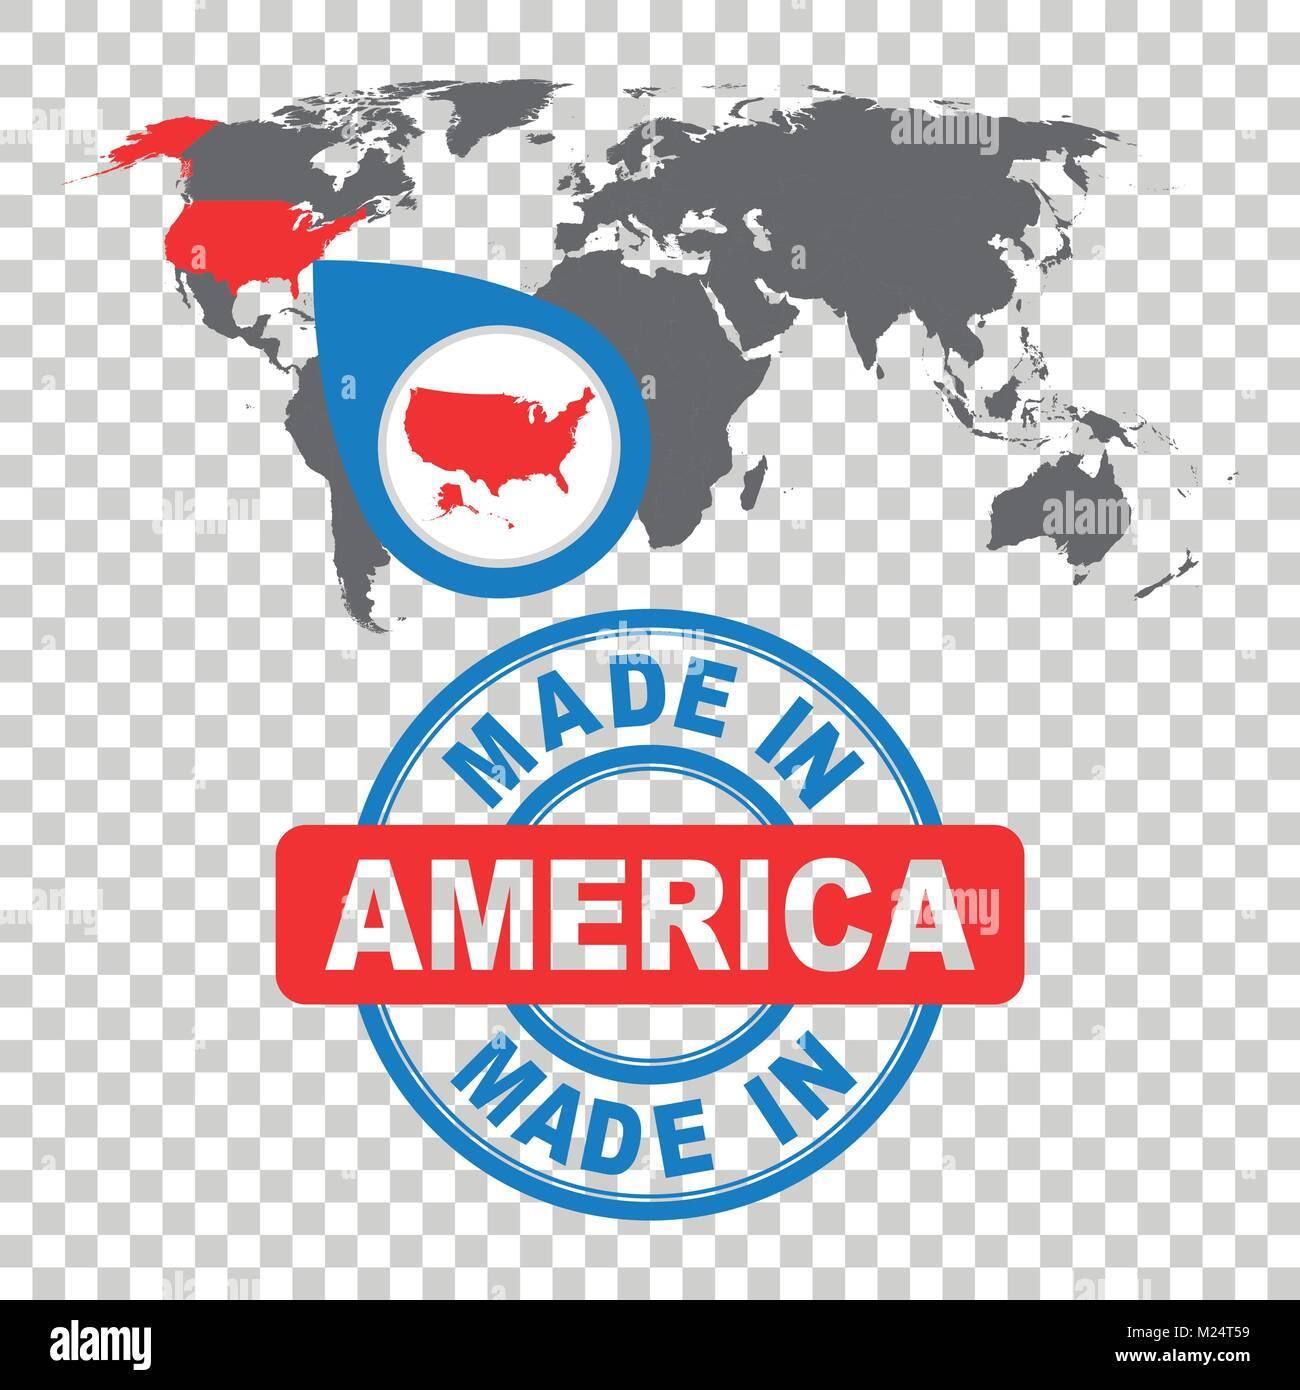 Made in America, USA stamp  World map with red country